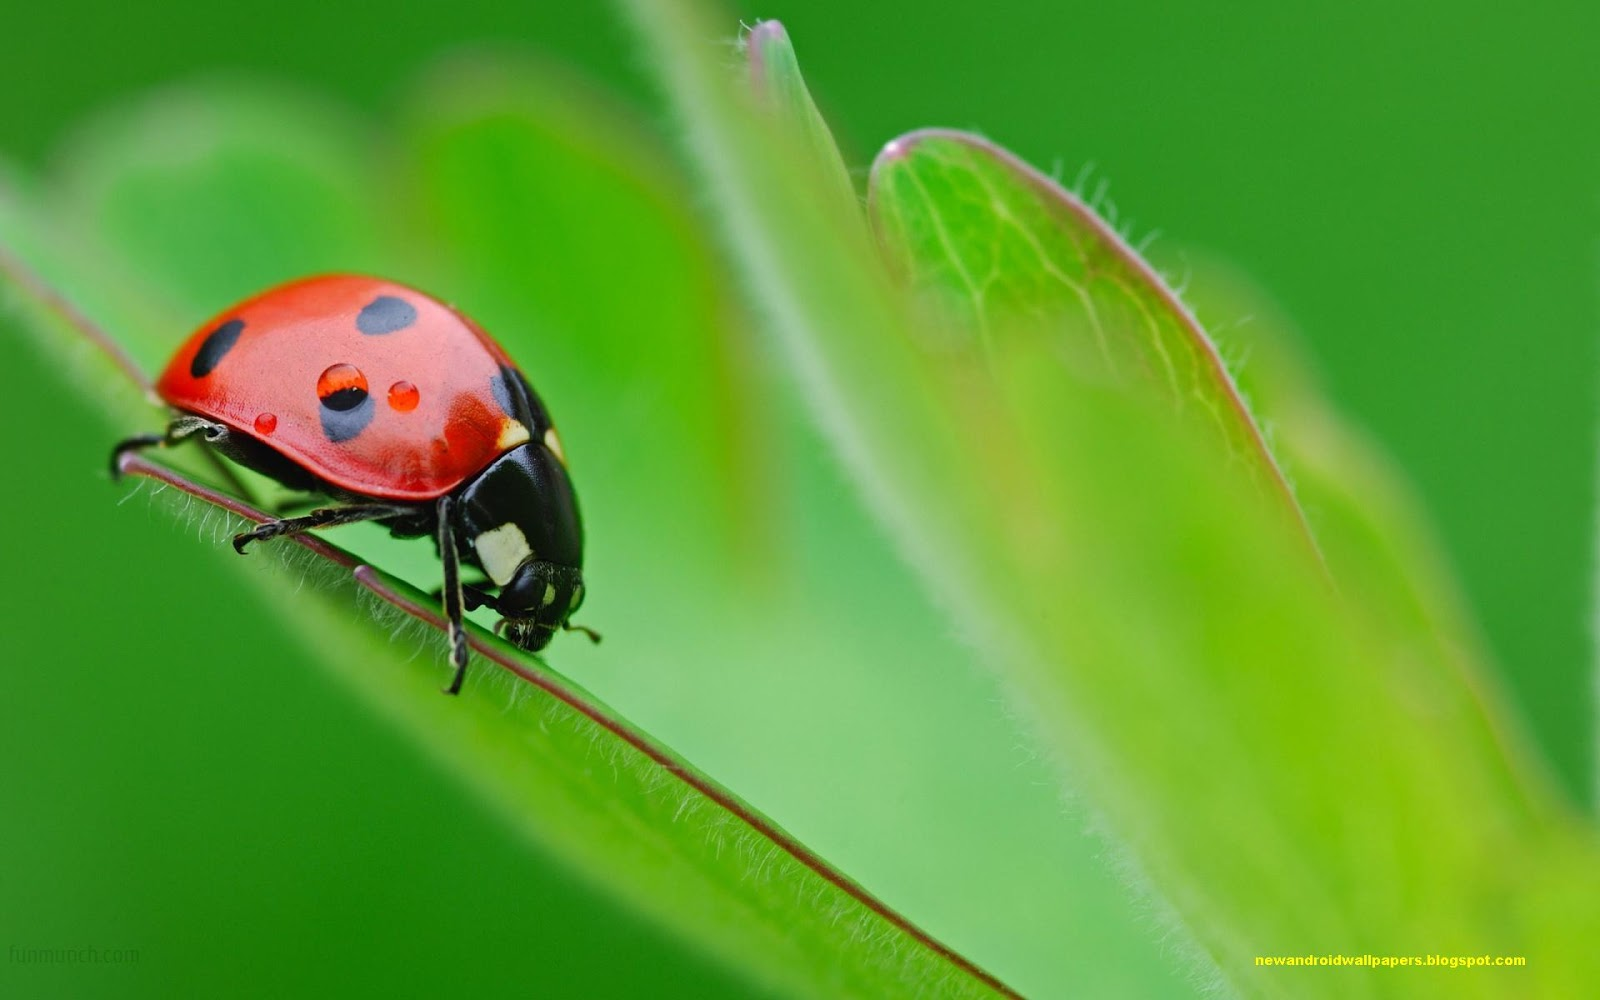 Best Collection Of 2014 Insects Wallpapers In Super Hd For ...